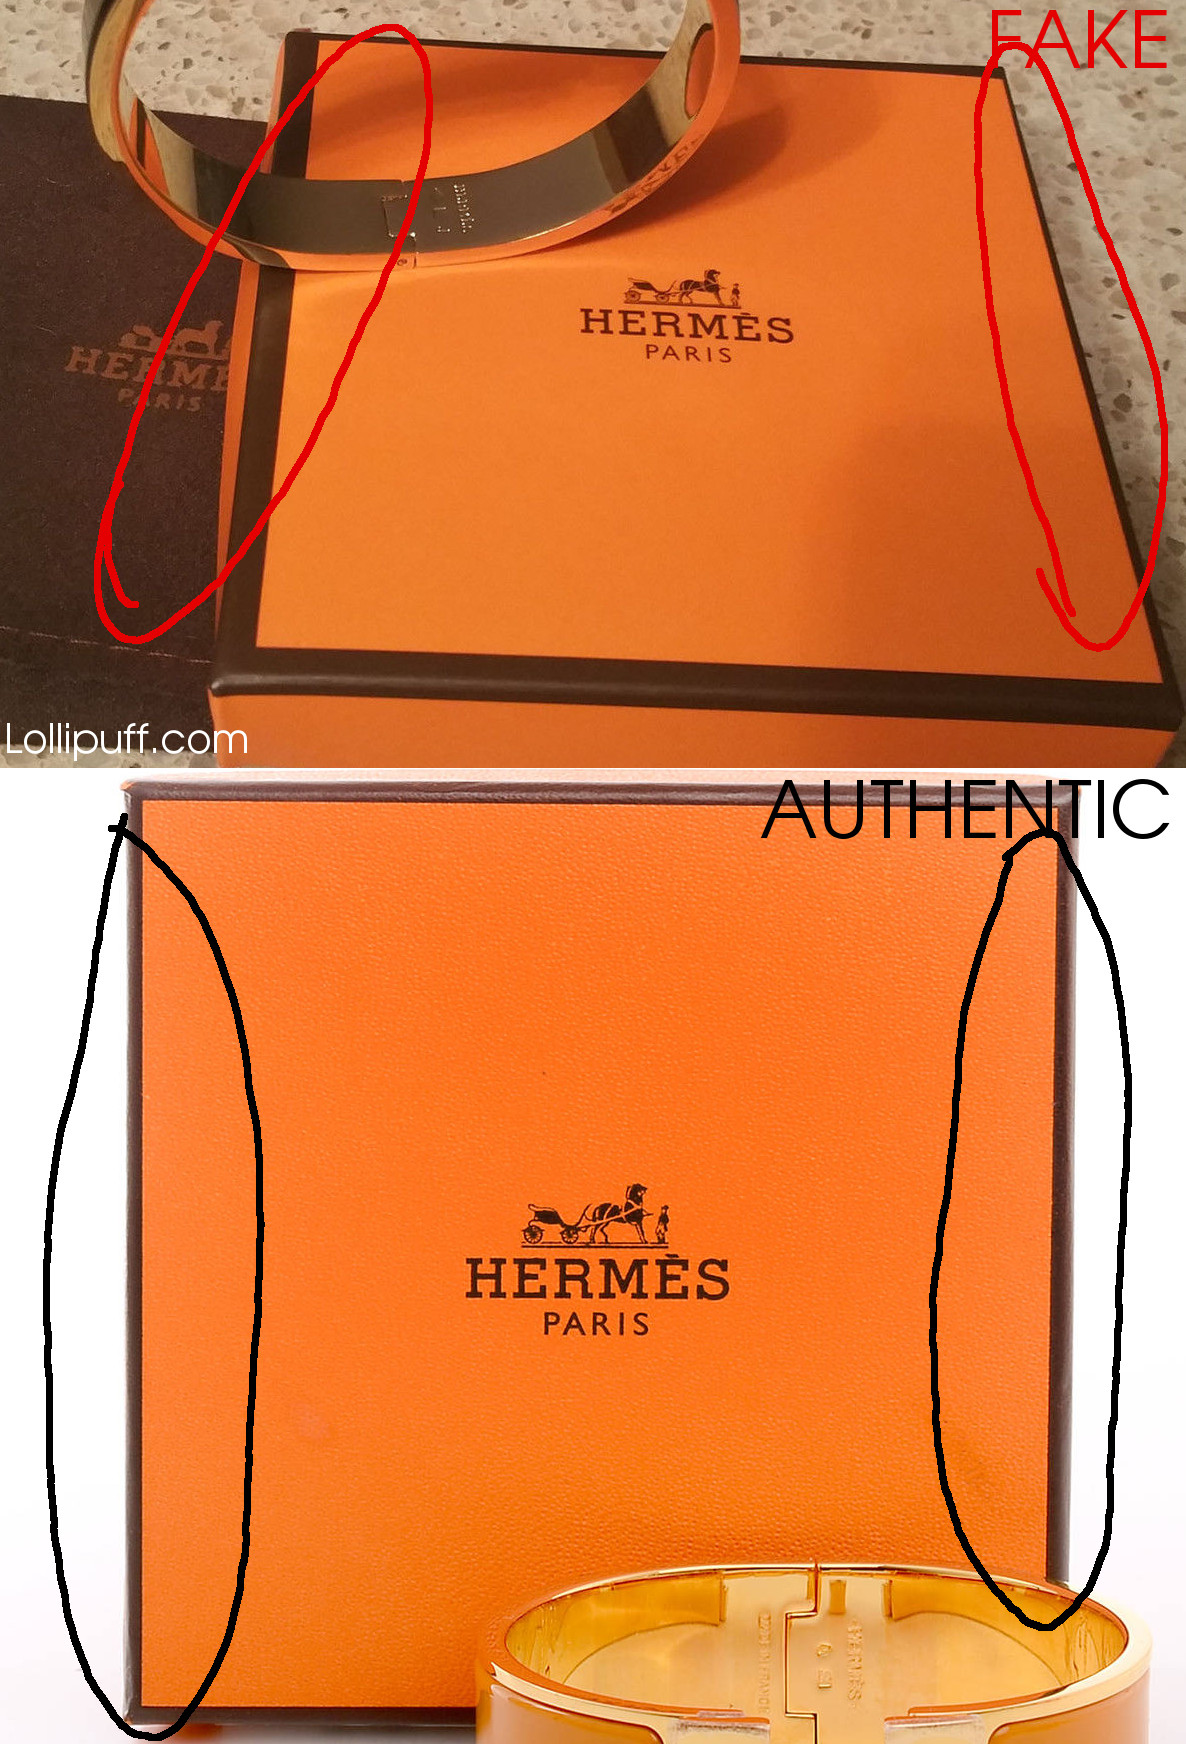 replica hermes enamel bracelets how to spot a fake hermes bag. Black Bedroom Furniture Sets. Home Design Ideas